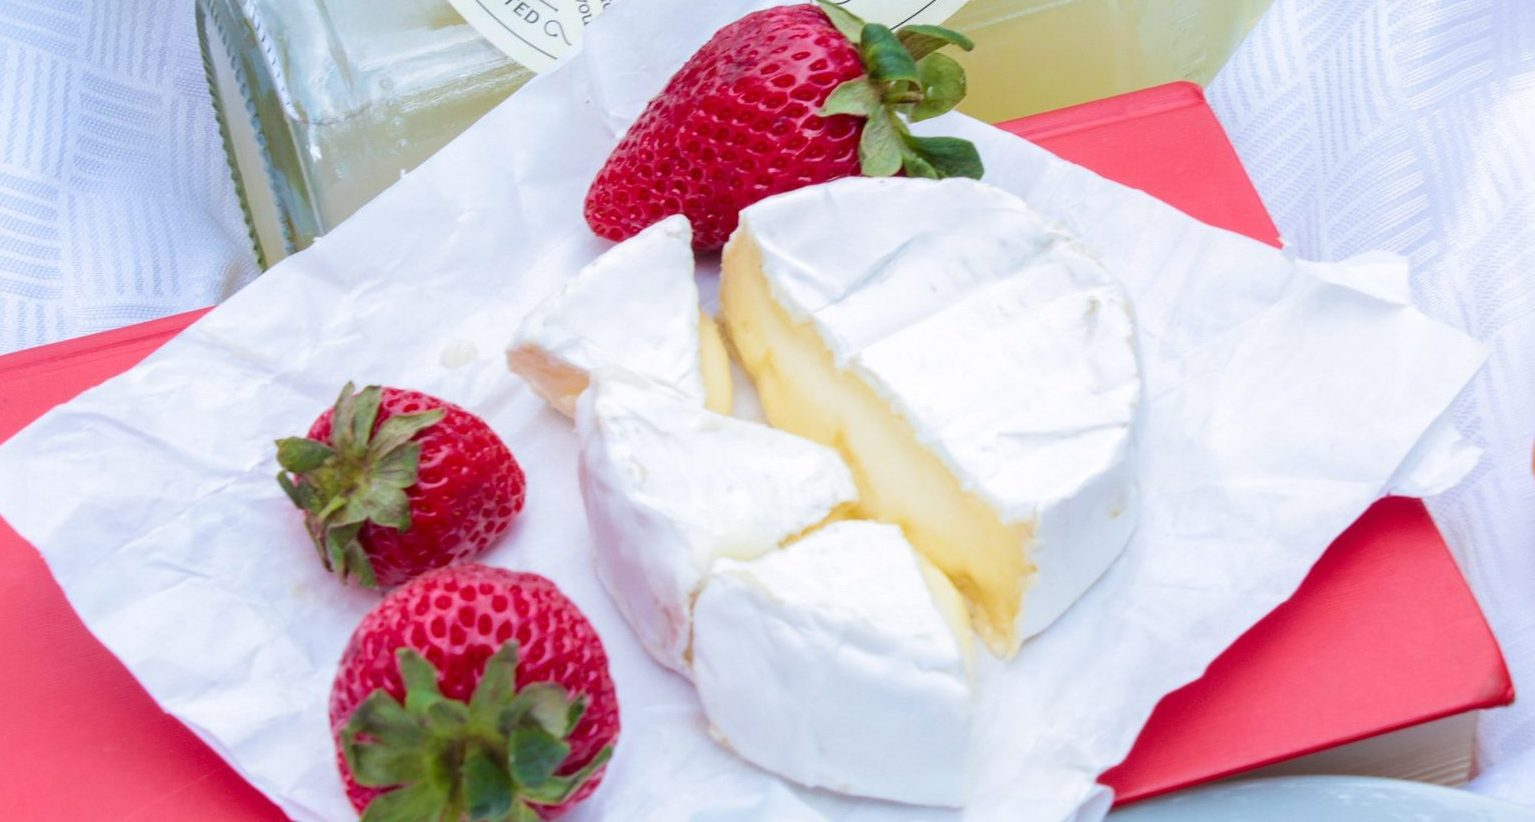 Heart-shaped strawberries and cream-flavoured CHEESE is part of Lidl's new Valentine's range